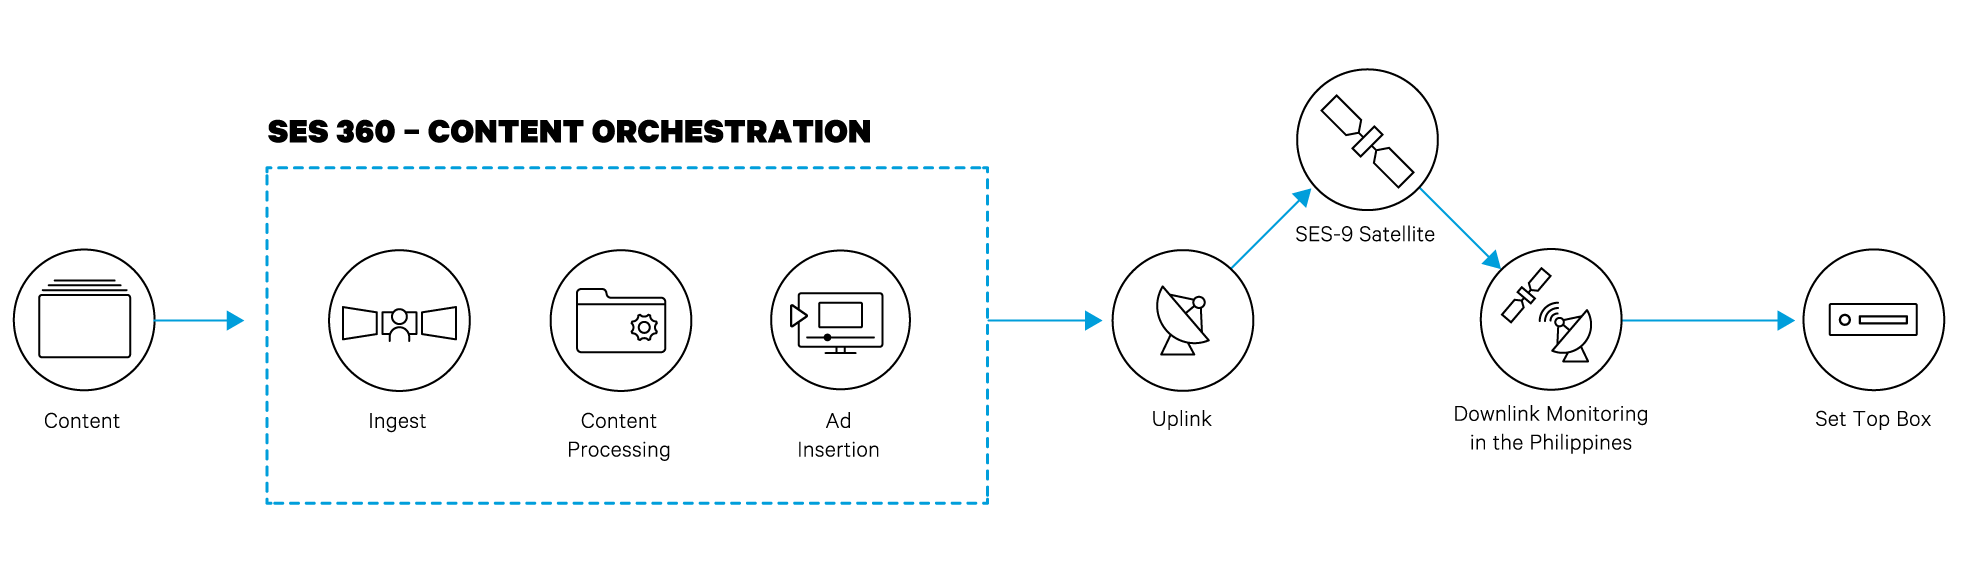 Magistan workflow diagram